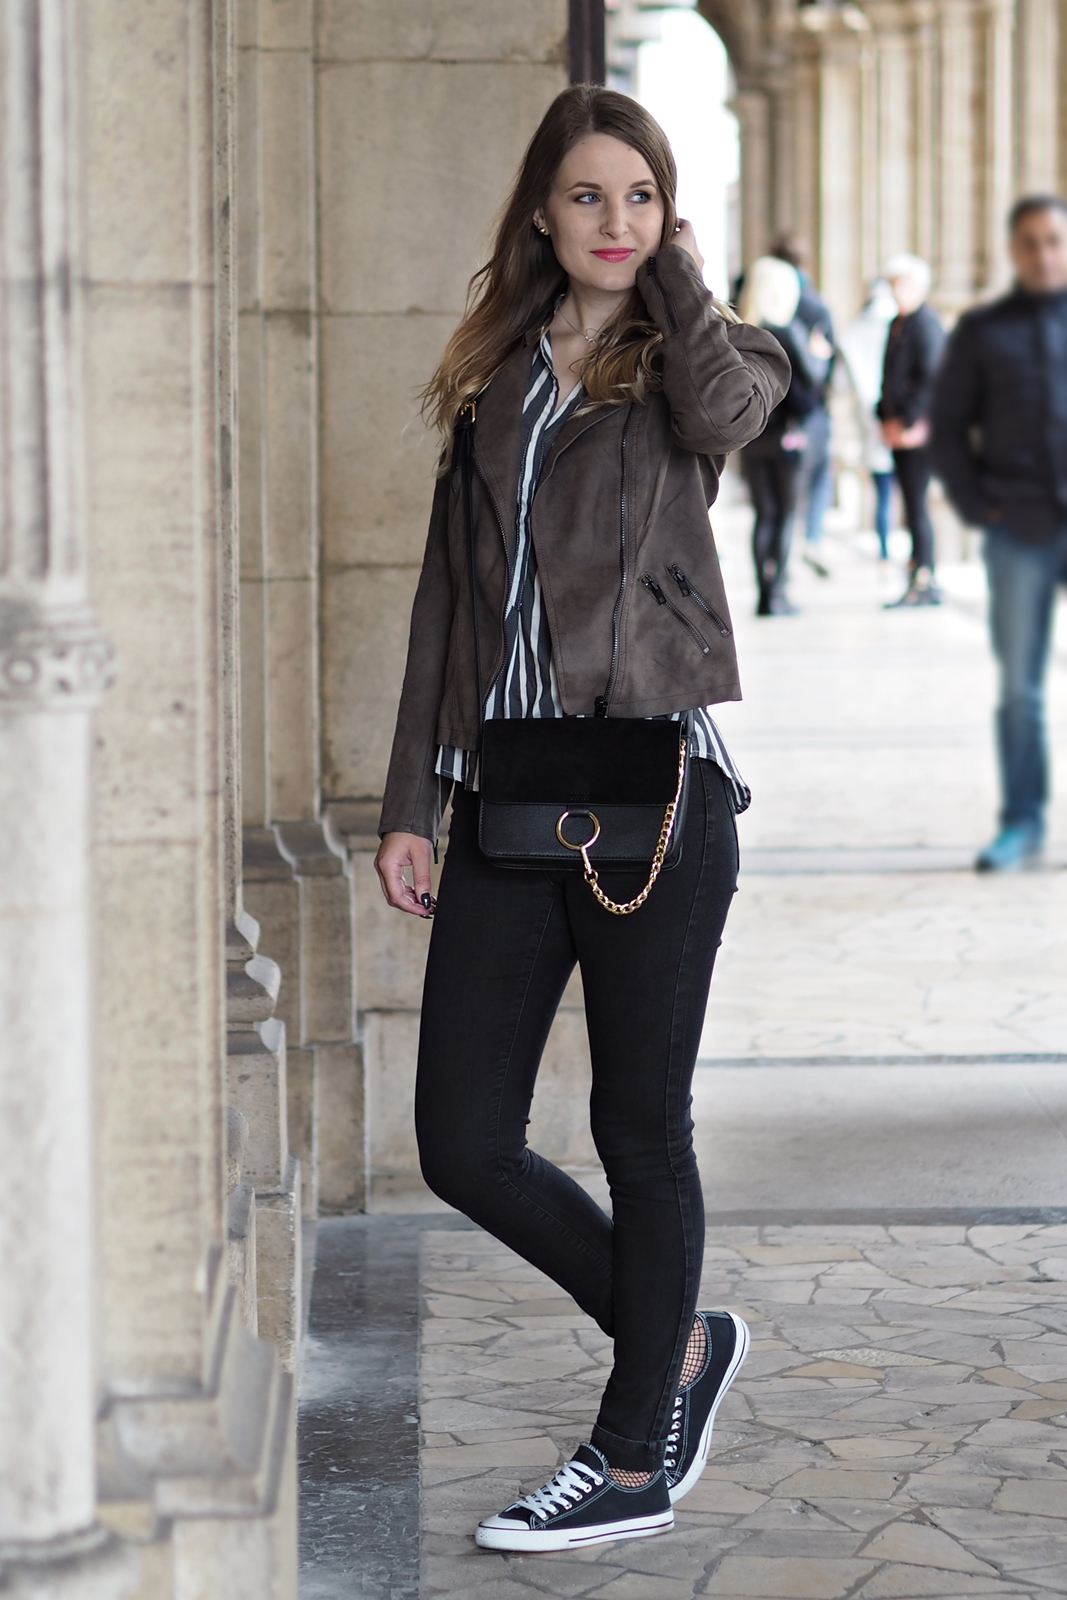 Herbst Outfit mit Streifenbluse für das Fashion Camp Vienna - Style - Street Style - Fashion - Mode - Trends - Kunstlederjacke - Bluse - Skinny Jeans - Chucks - Cross Body Bag - Fashionladyloves by Tamara Wagner - Fashion Blog - Mode Blog aus Graz Österreich